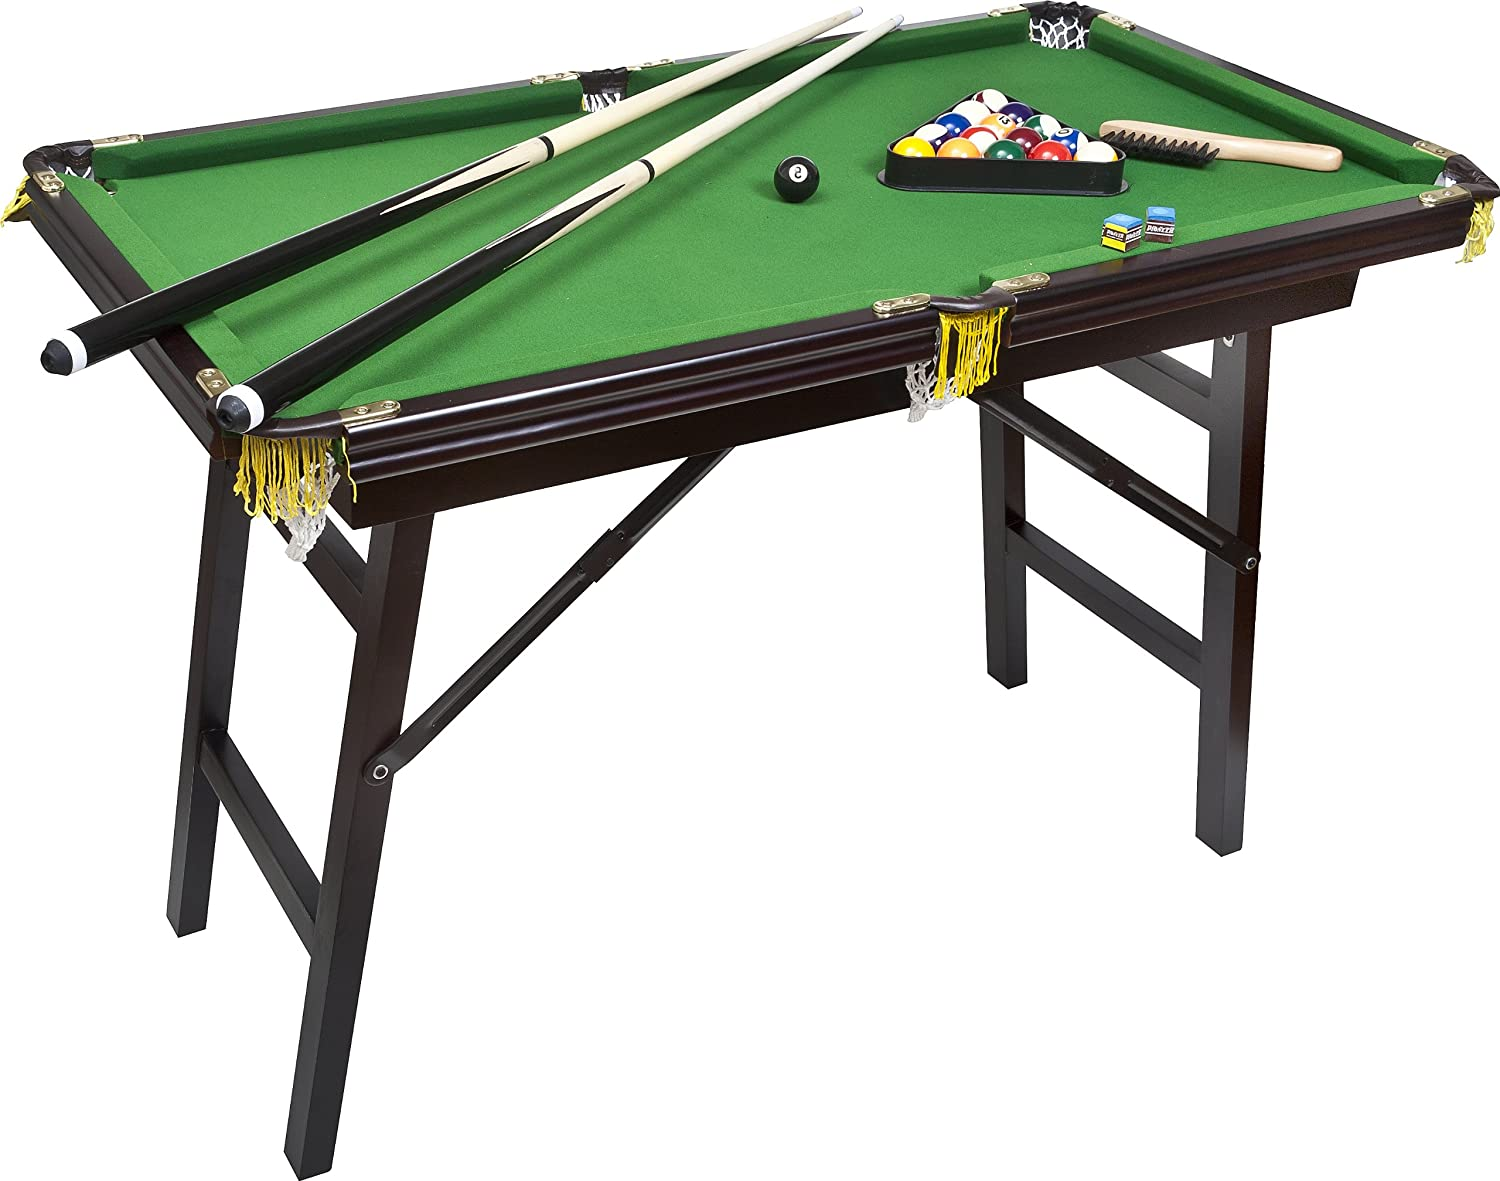 Amazing Bello Games New York, Deluxe Folding Pool Table EXTRA LARGE 44u2033